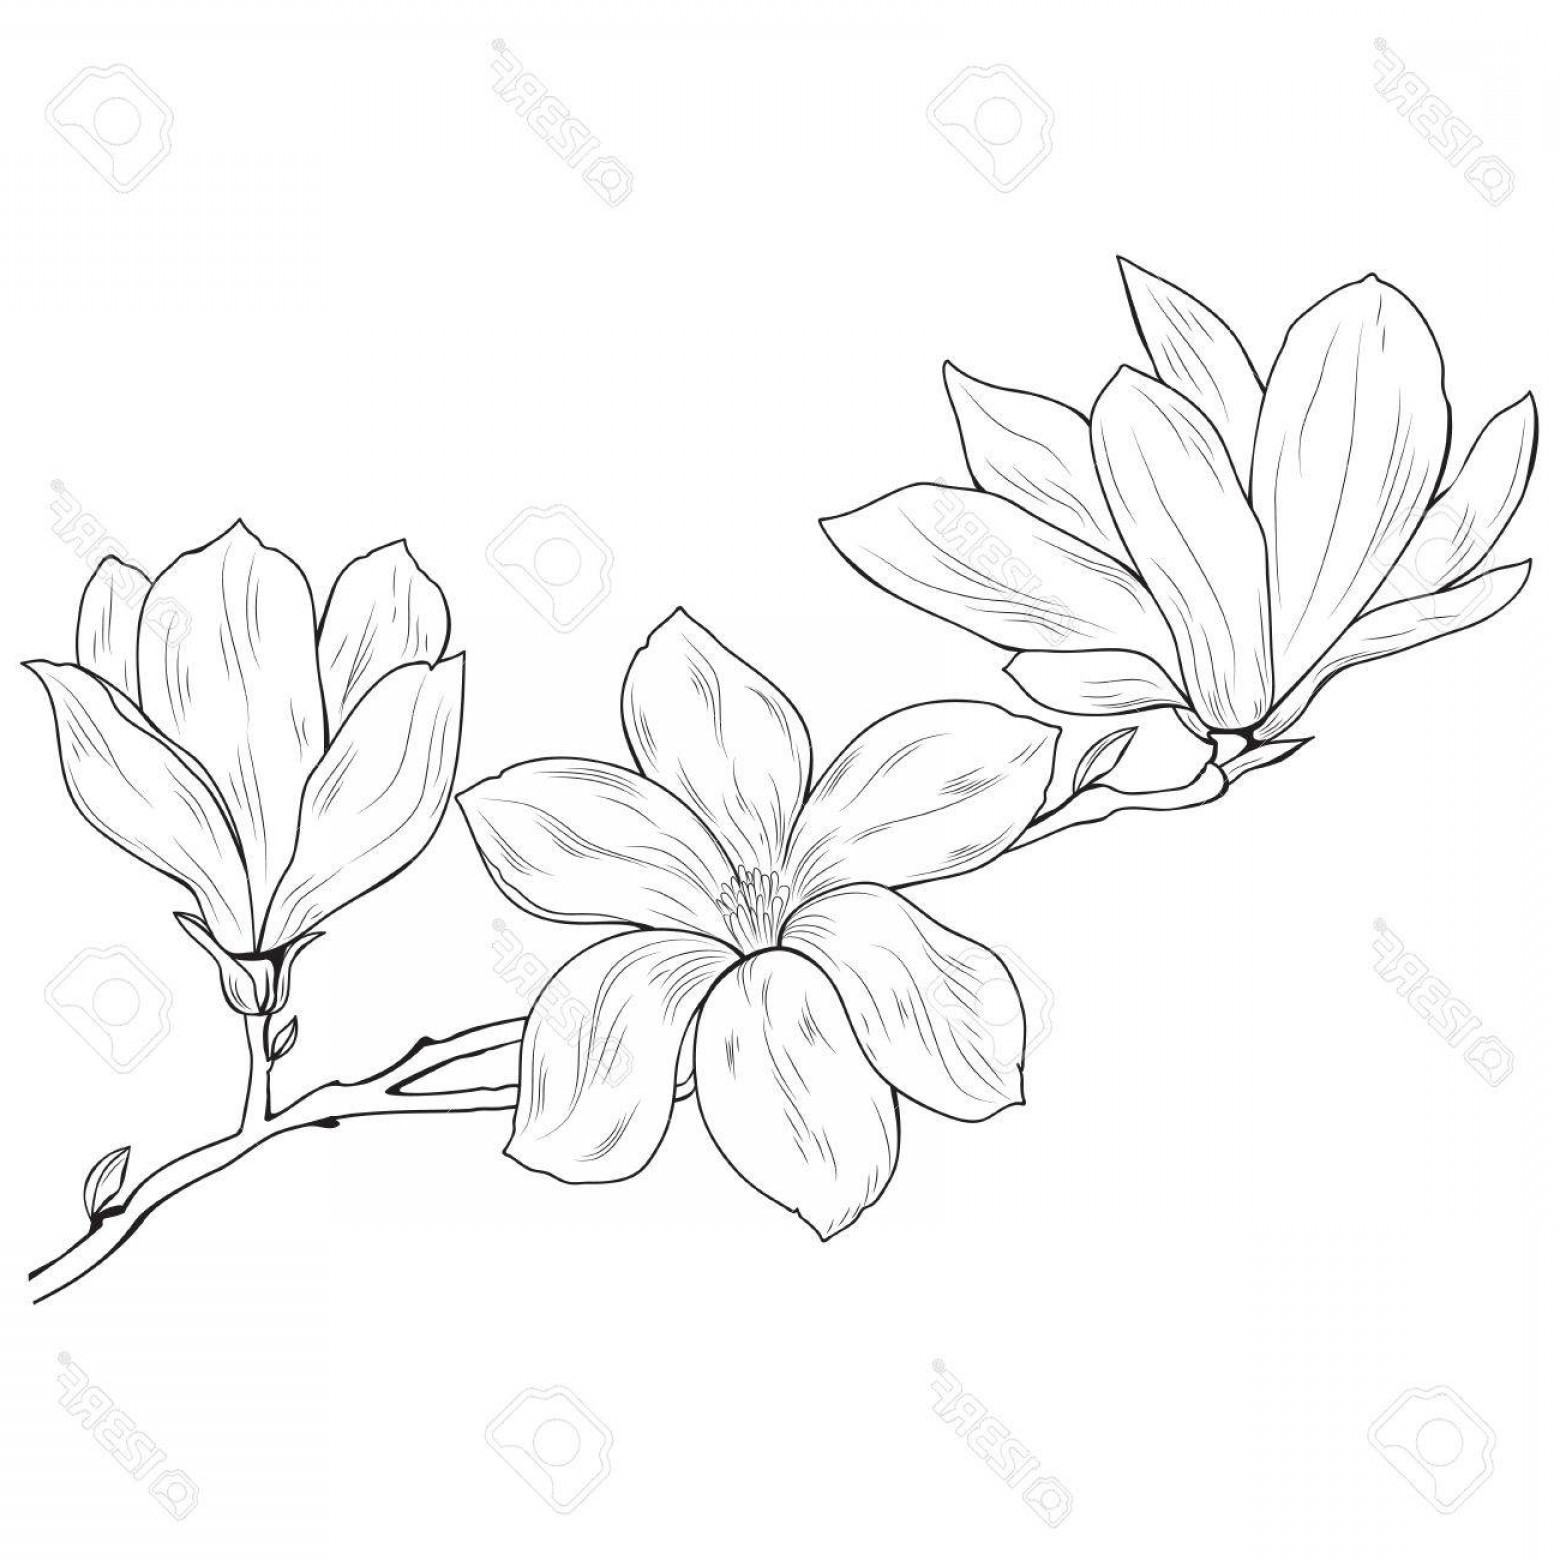 Magnolia Black And White Vector: Photostock Vector Magnolia Flowers On A Tree Branch Sketch Black On White Background